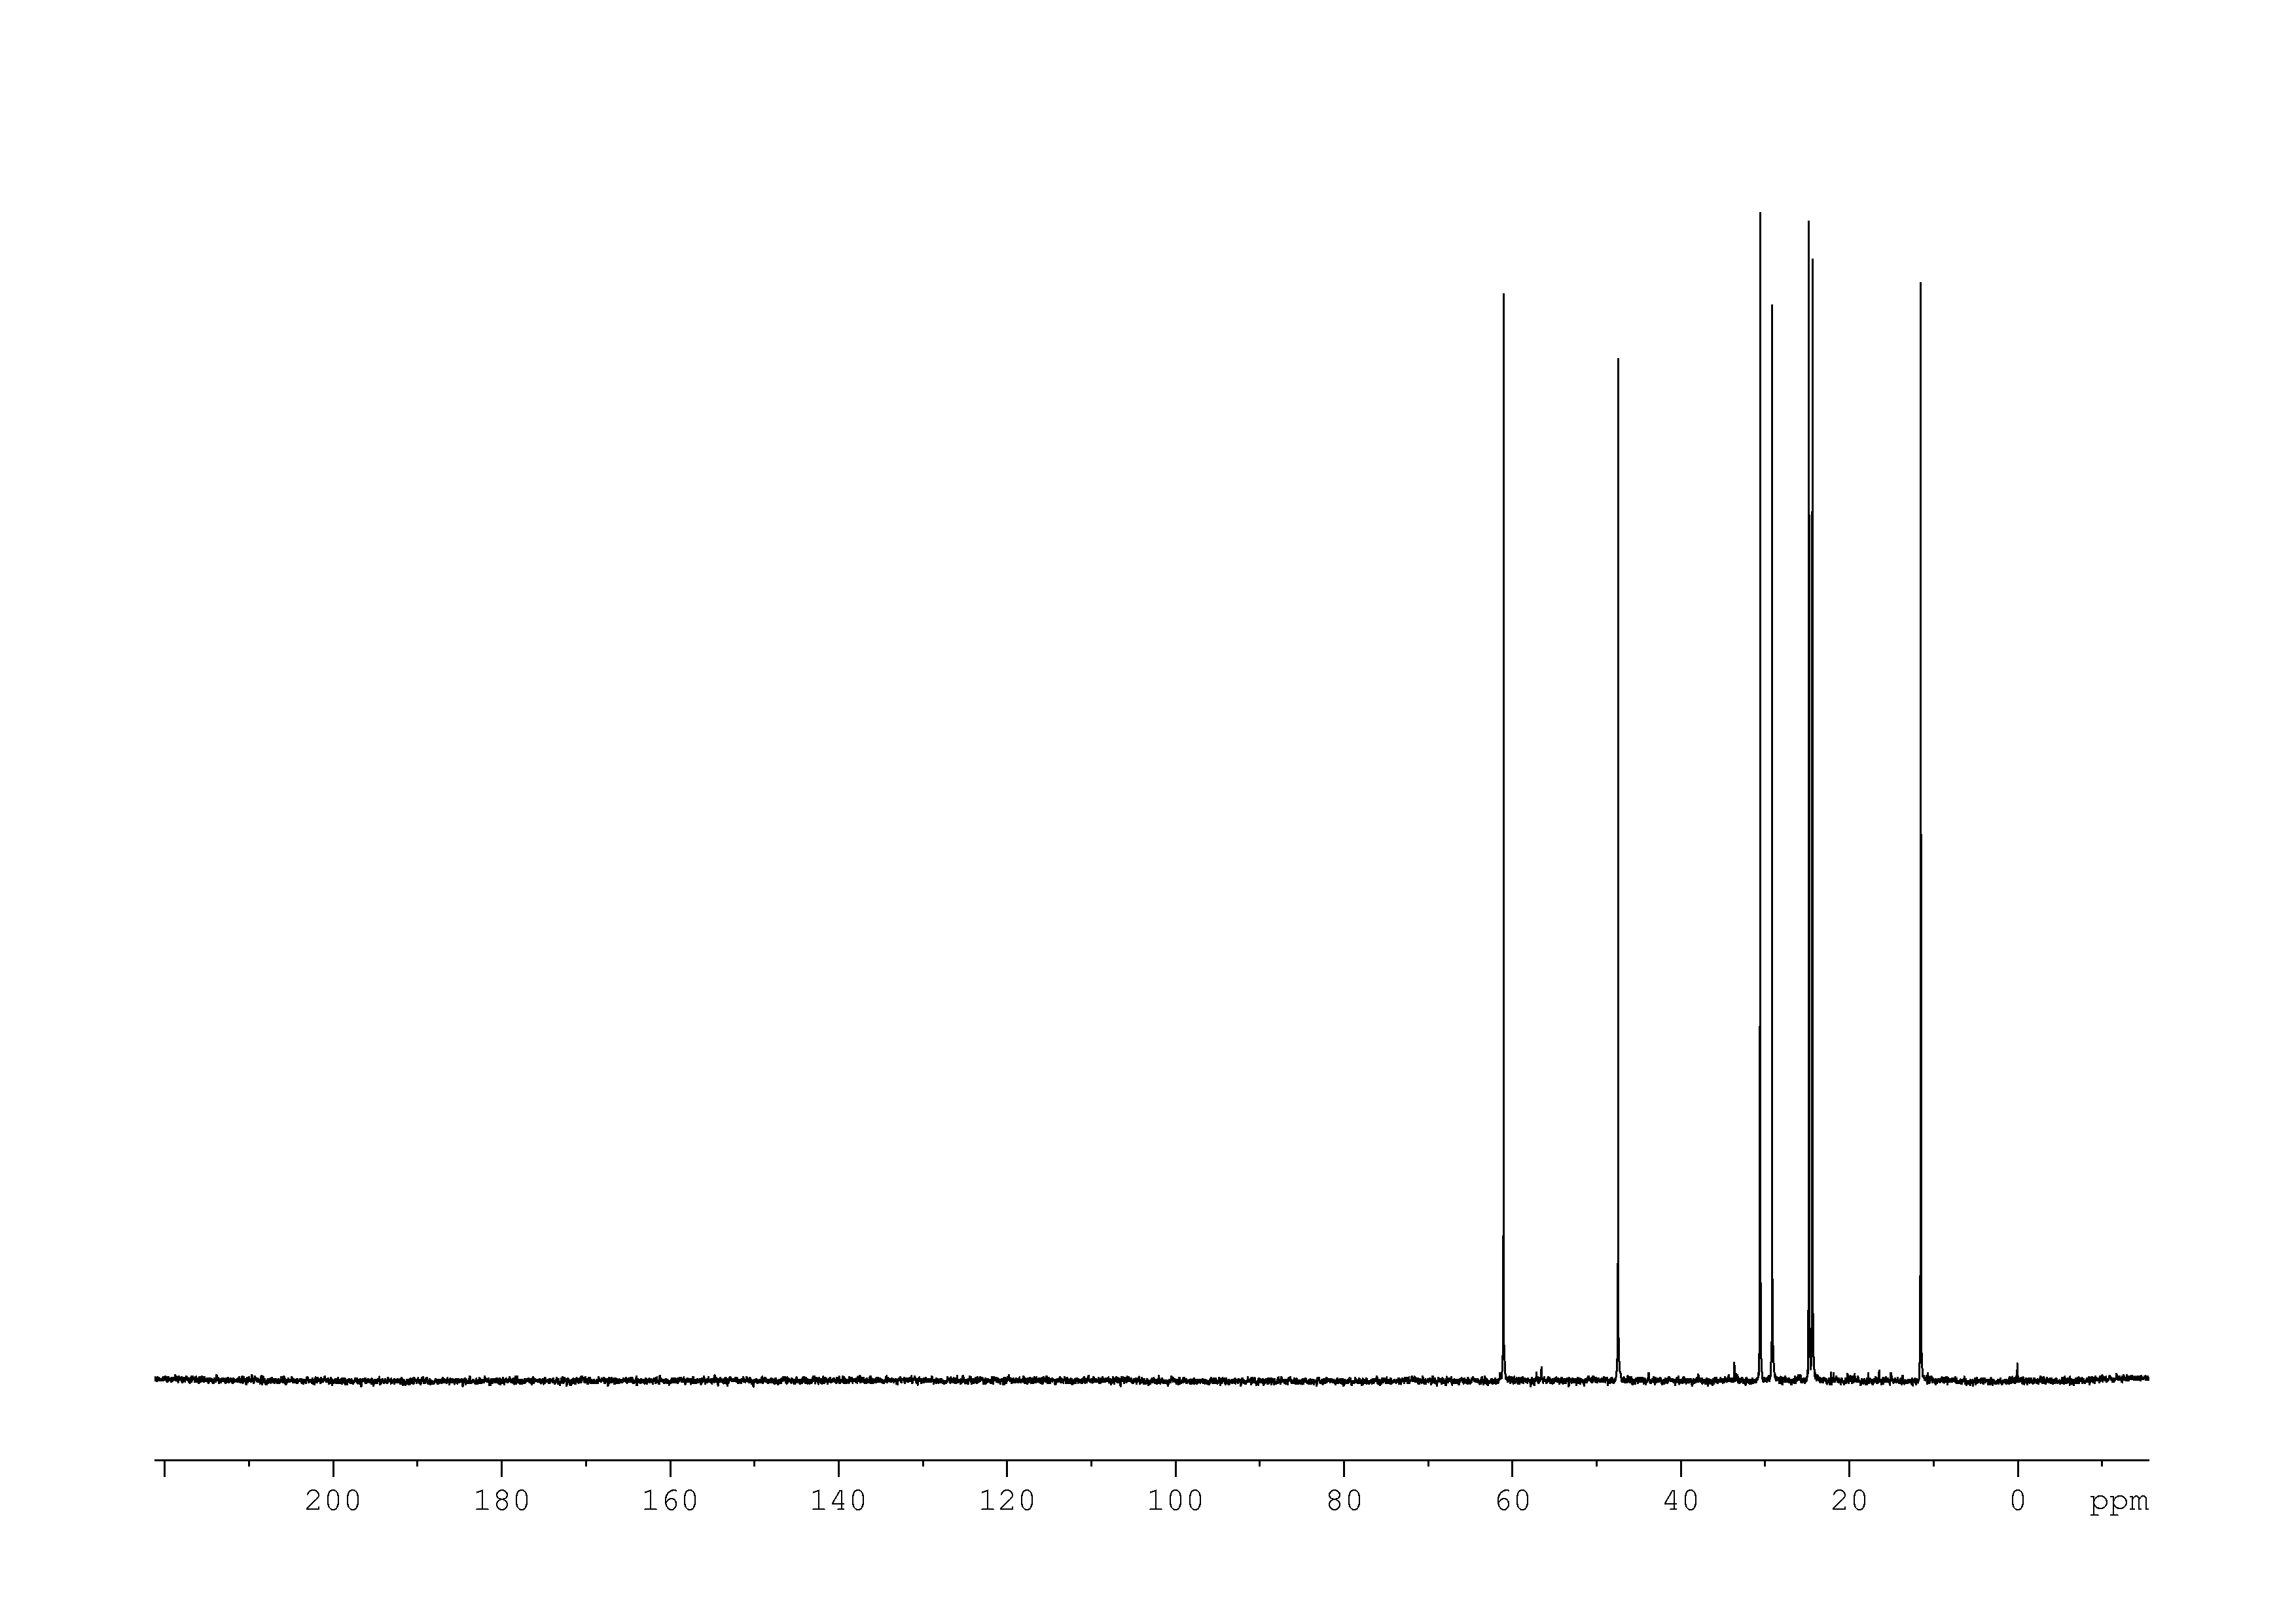 1D 13C, 7.4 spectrum for 2-ethylpiperidine